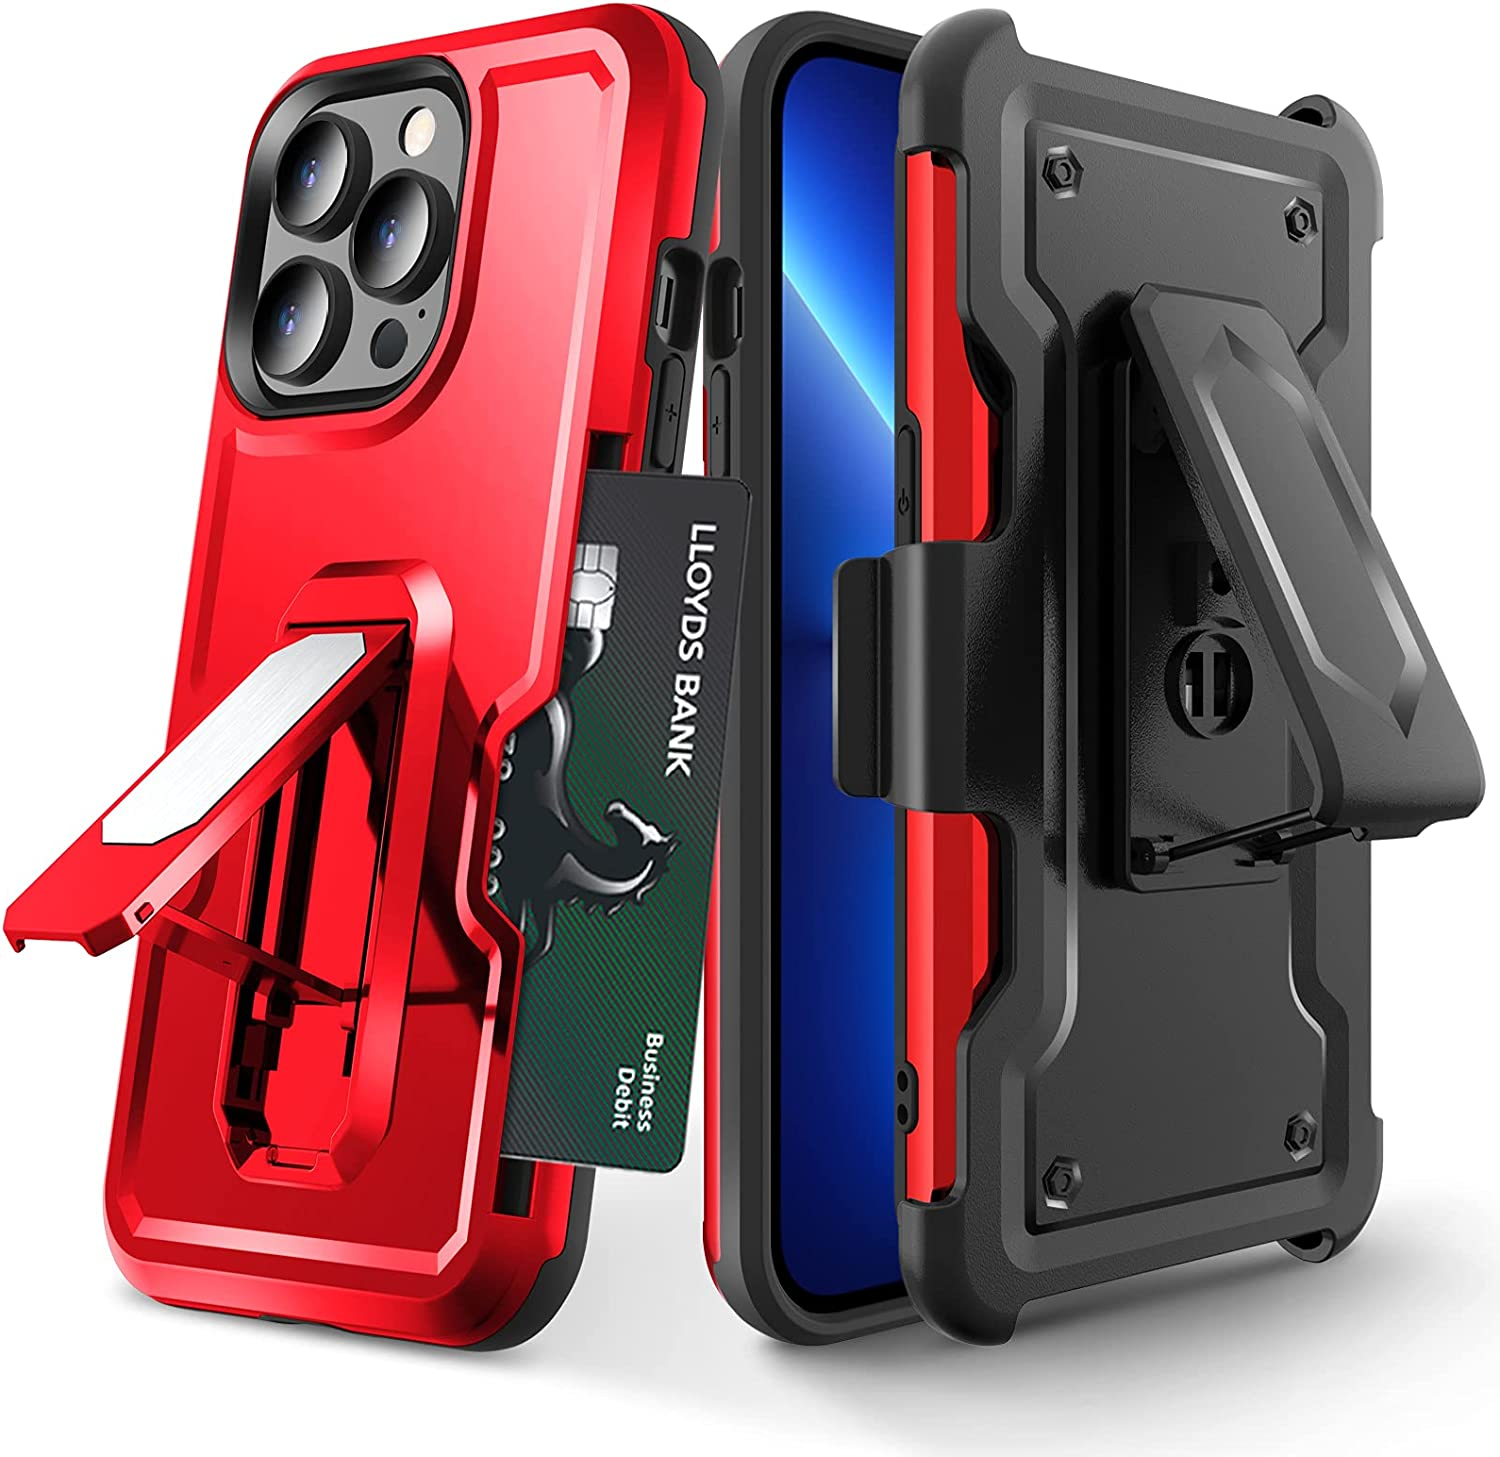 Elegant Choise for iPhone 13 Pro Case, iPhone 13 Pro Phone Case, Case for iPhone 13 Pro, iPhone 13 Pro Case with Card Holder/Kickstand/Belt Clip, Protective Phone Cases for iPhone 13 Pro (Red)